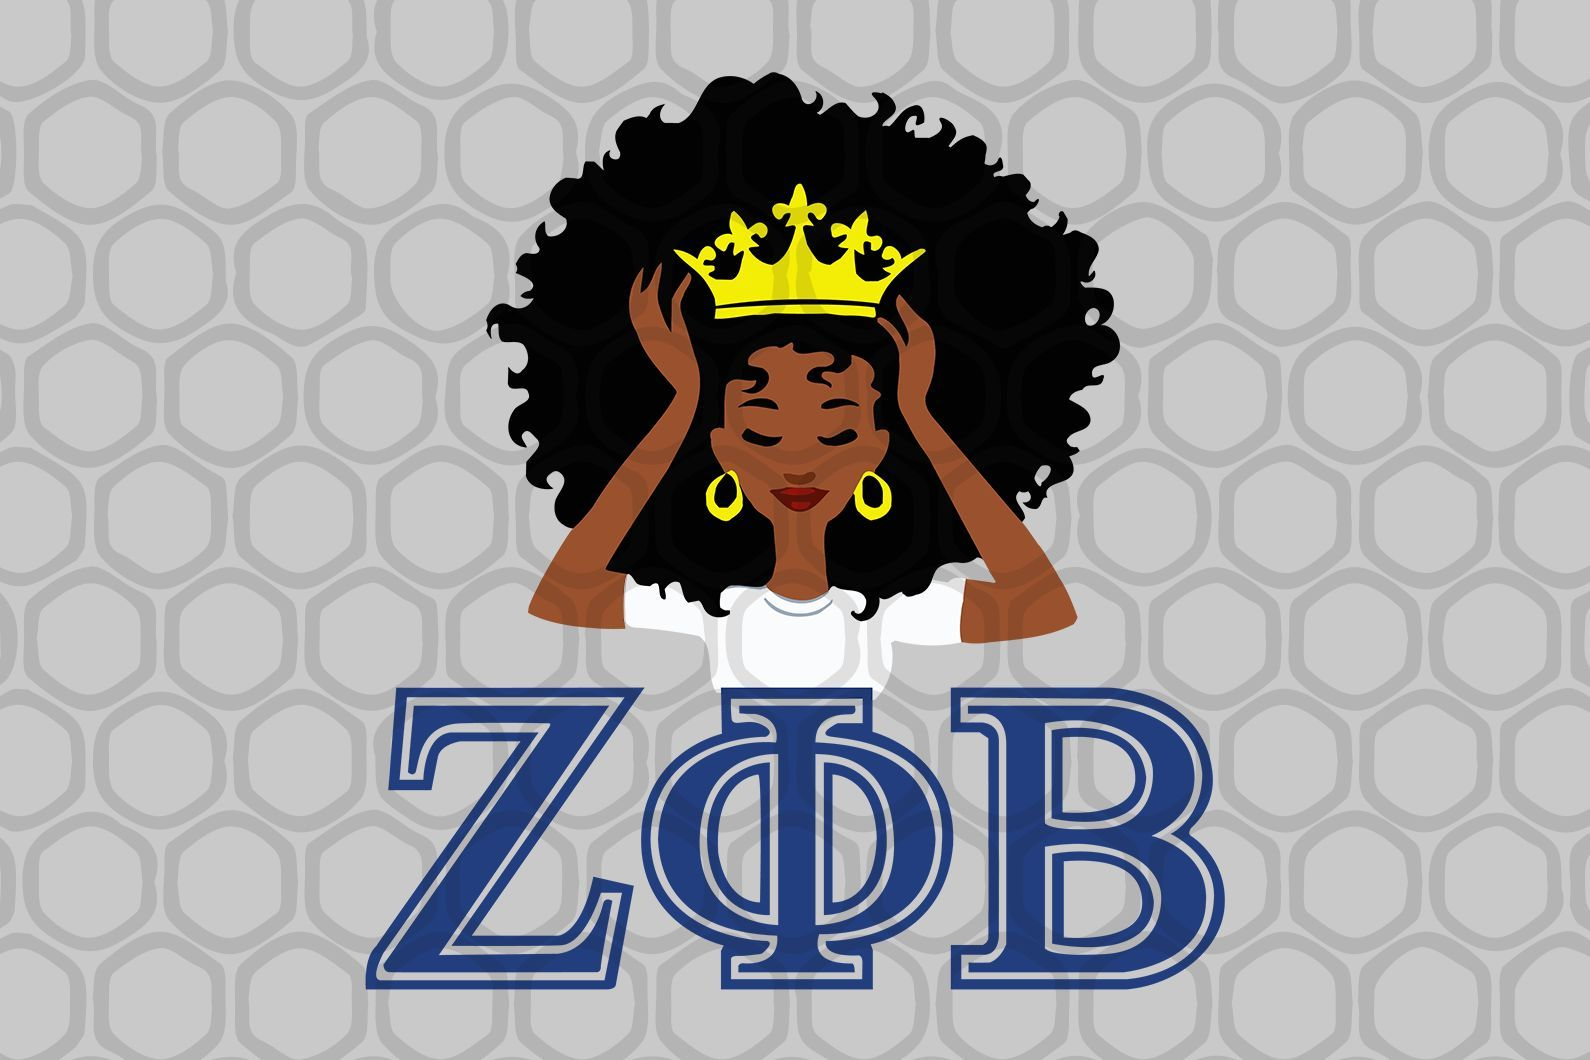 Instant Download You Will Receive 1 Zip File Includes 1 Svg File Files Colors Are Black 1 Dxf File 1 Png File Files Colors A In 2020 Zeta Phi Beta Phi Zeta